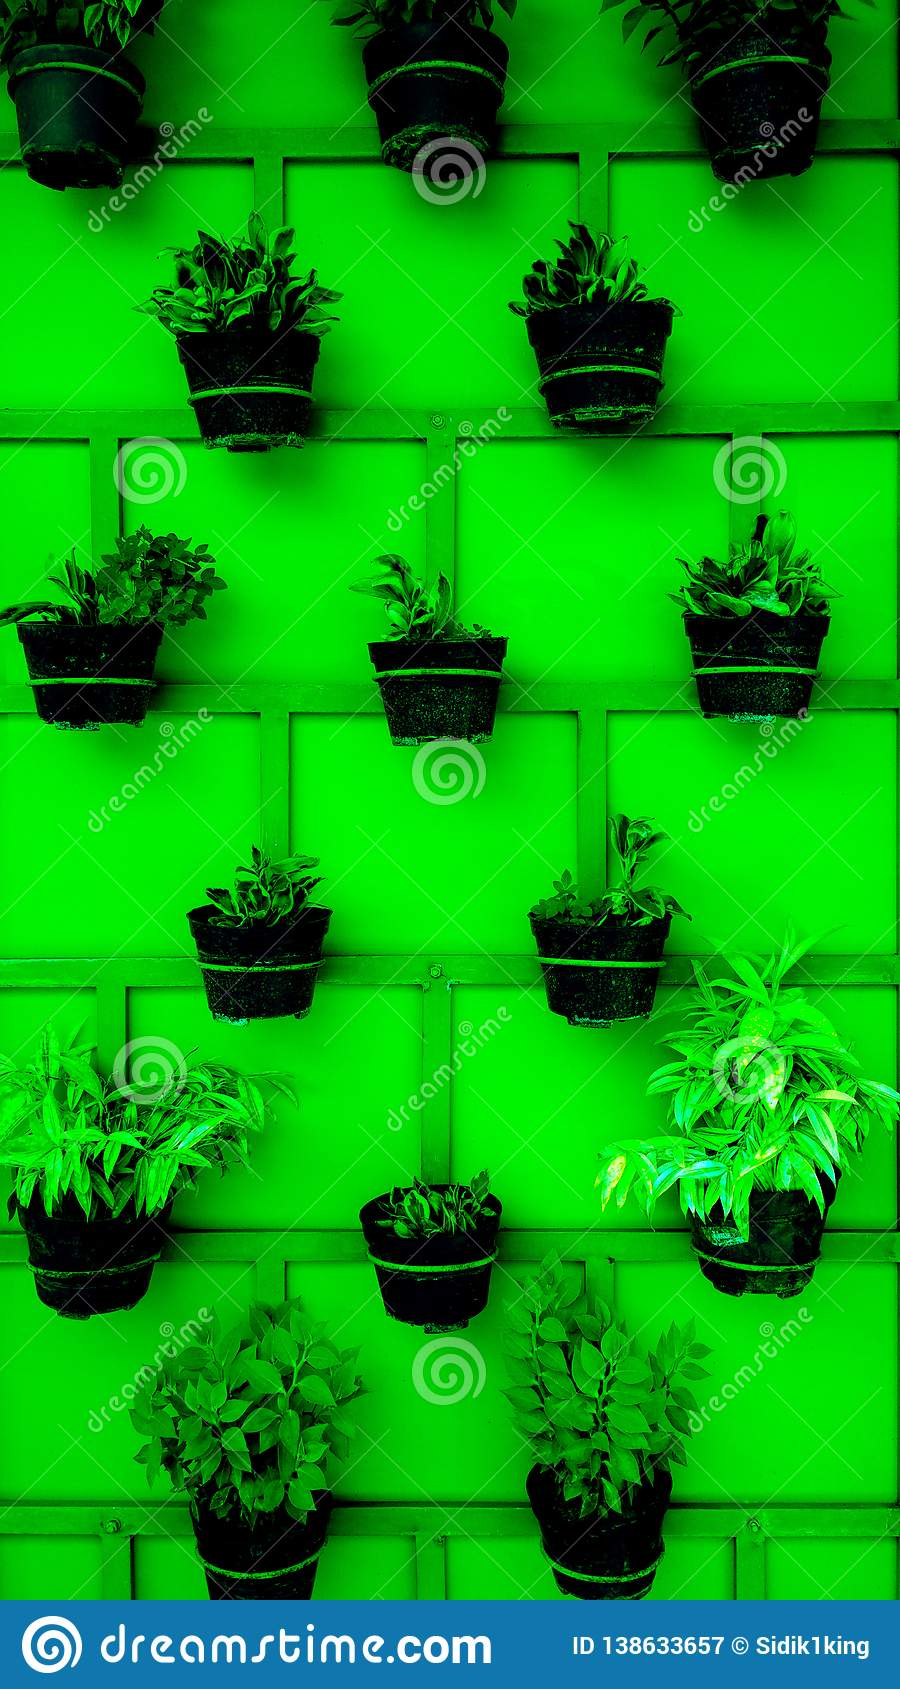 Plant pots neatly arranged on the wall.